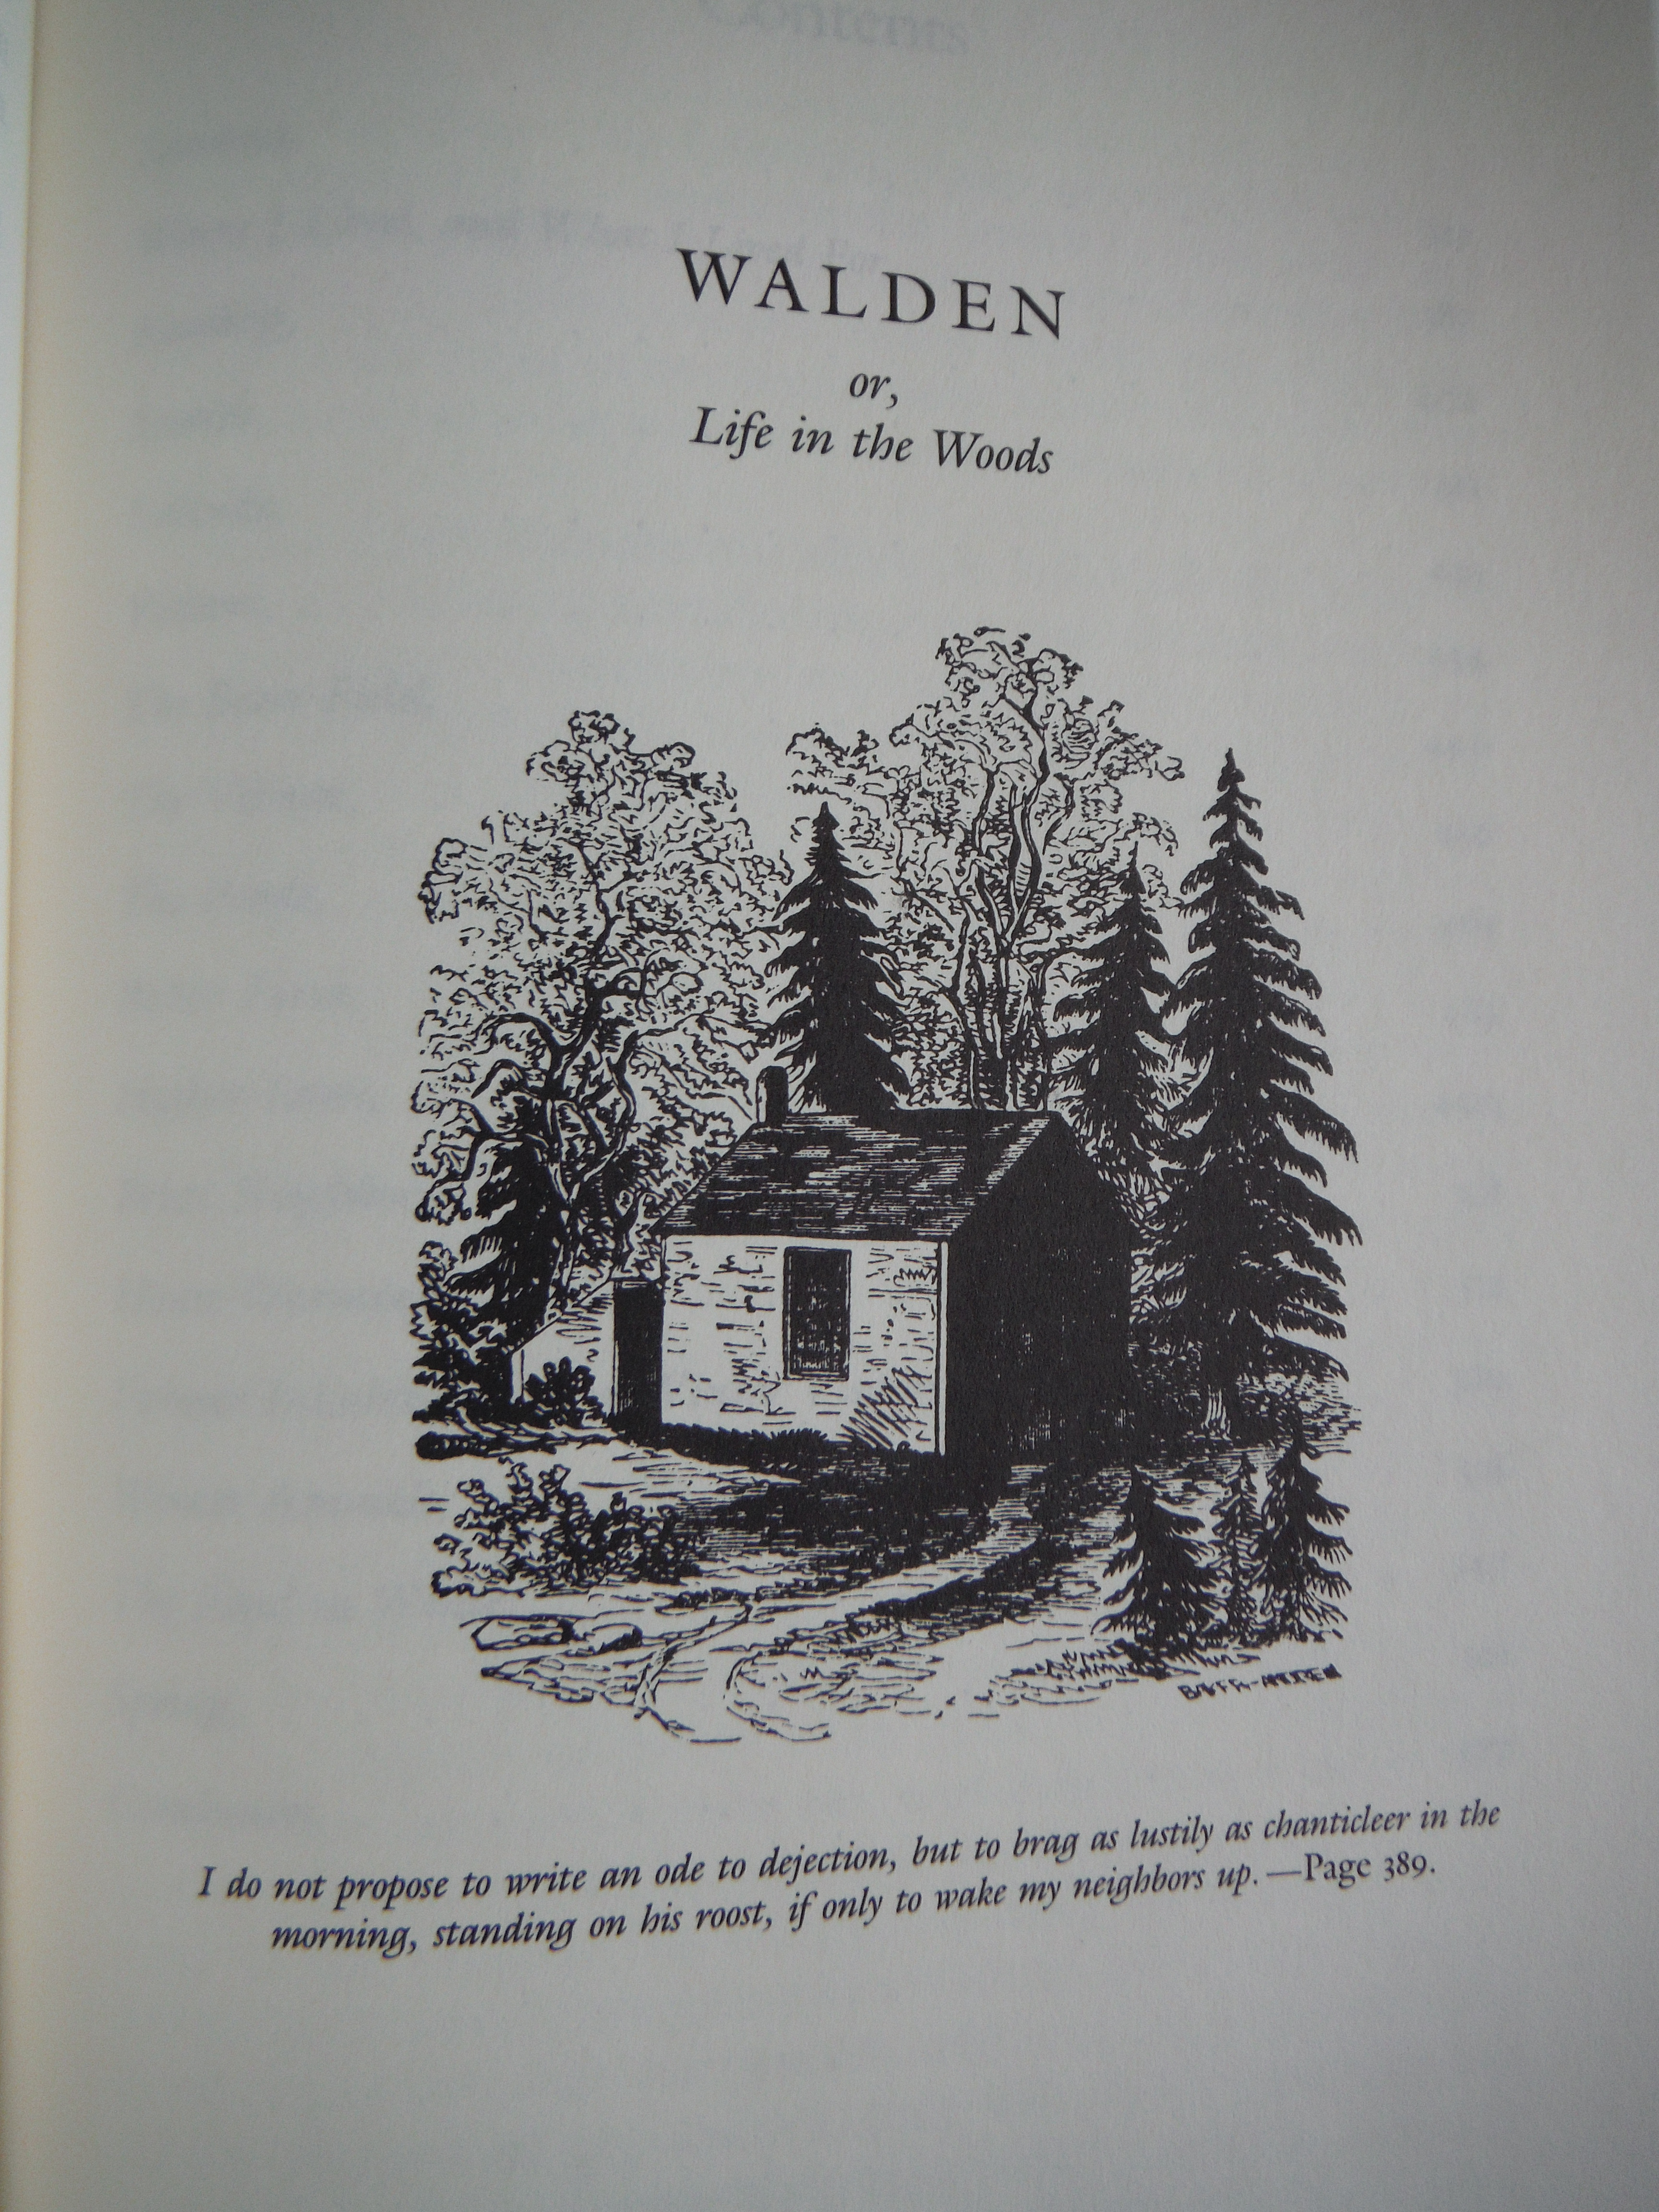 essays on walden or life in the woods Walden study guide contains a biography of henry david thoreau, literature essays, a complete e-text, quiz questions, major themes, characters, and a.